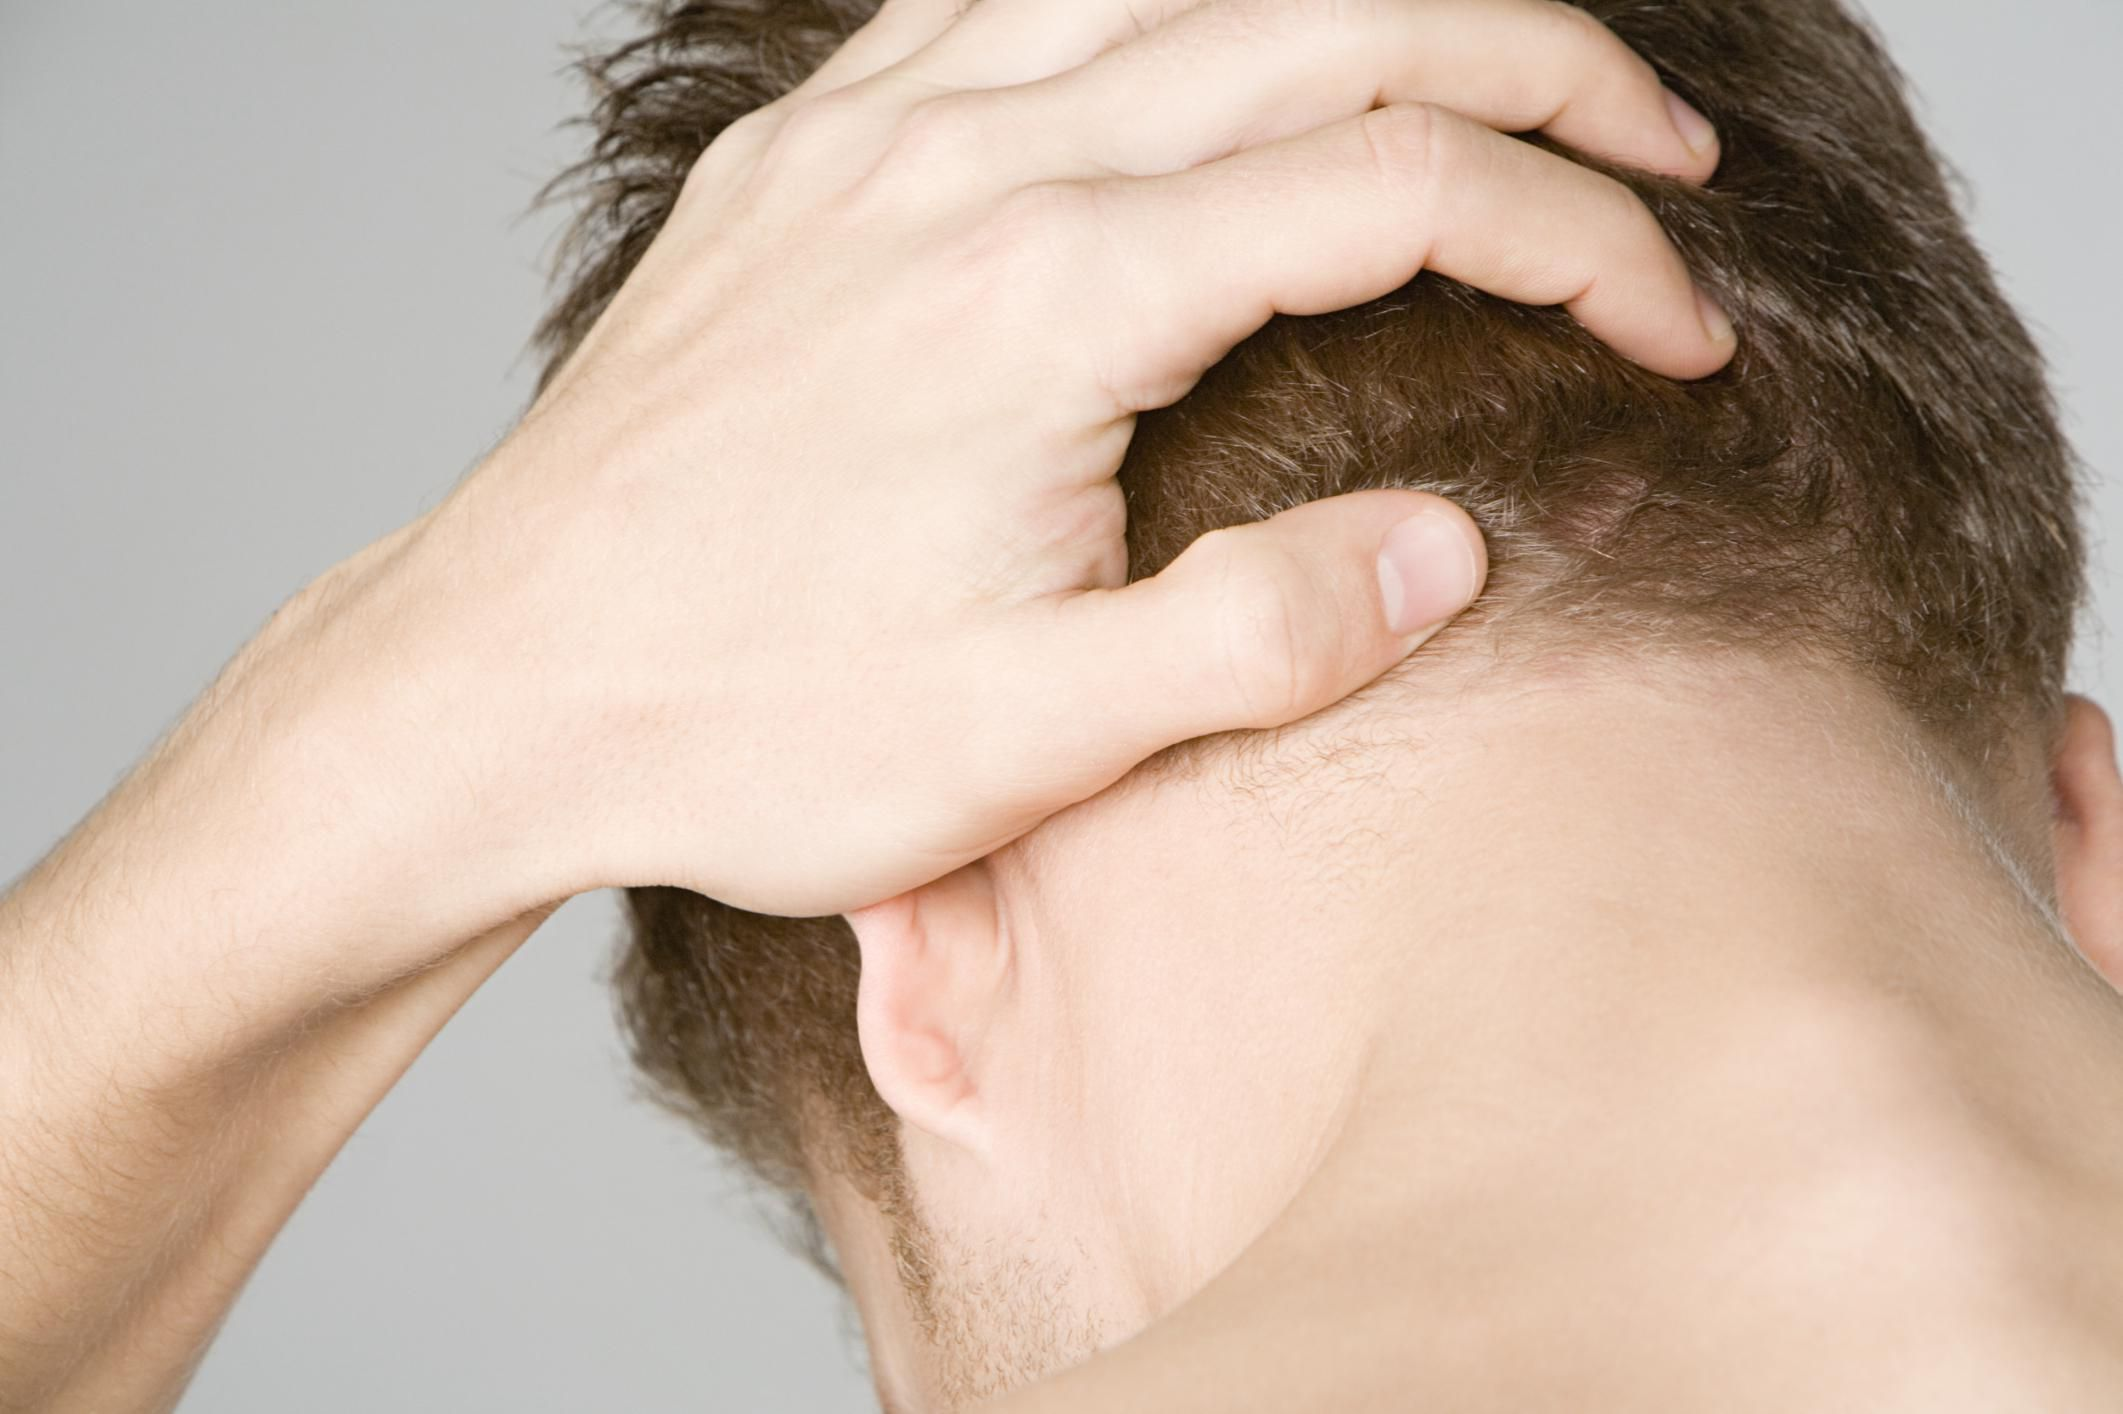 Itchiness as a Symptom of Multiple Sclerosis